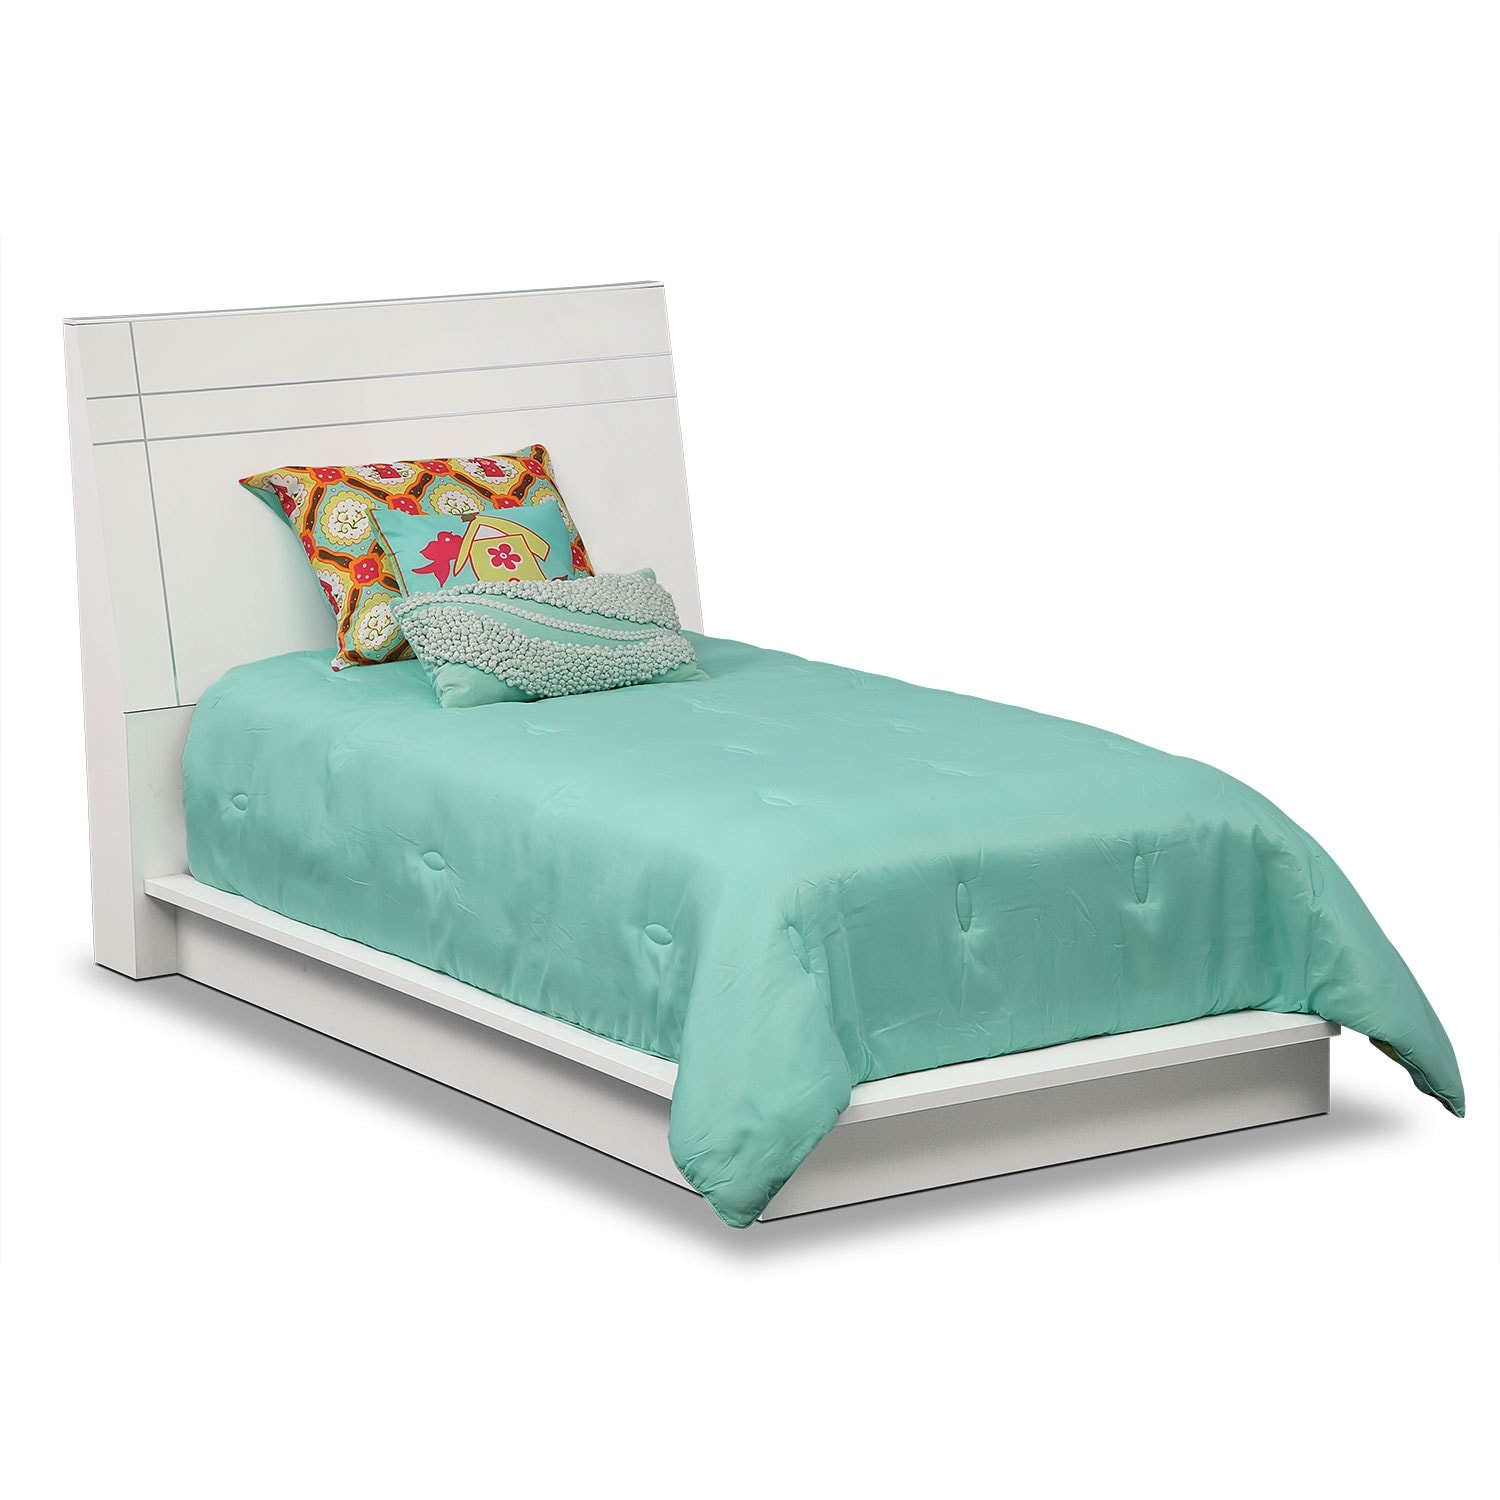 Dimora White II Twin Bed